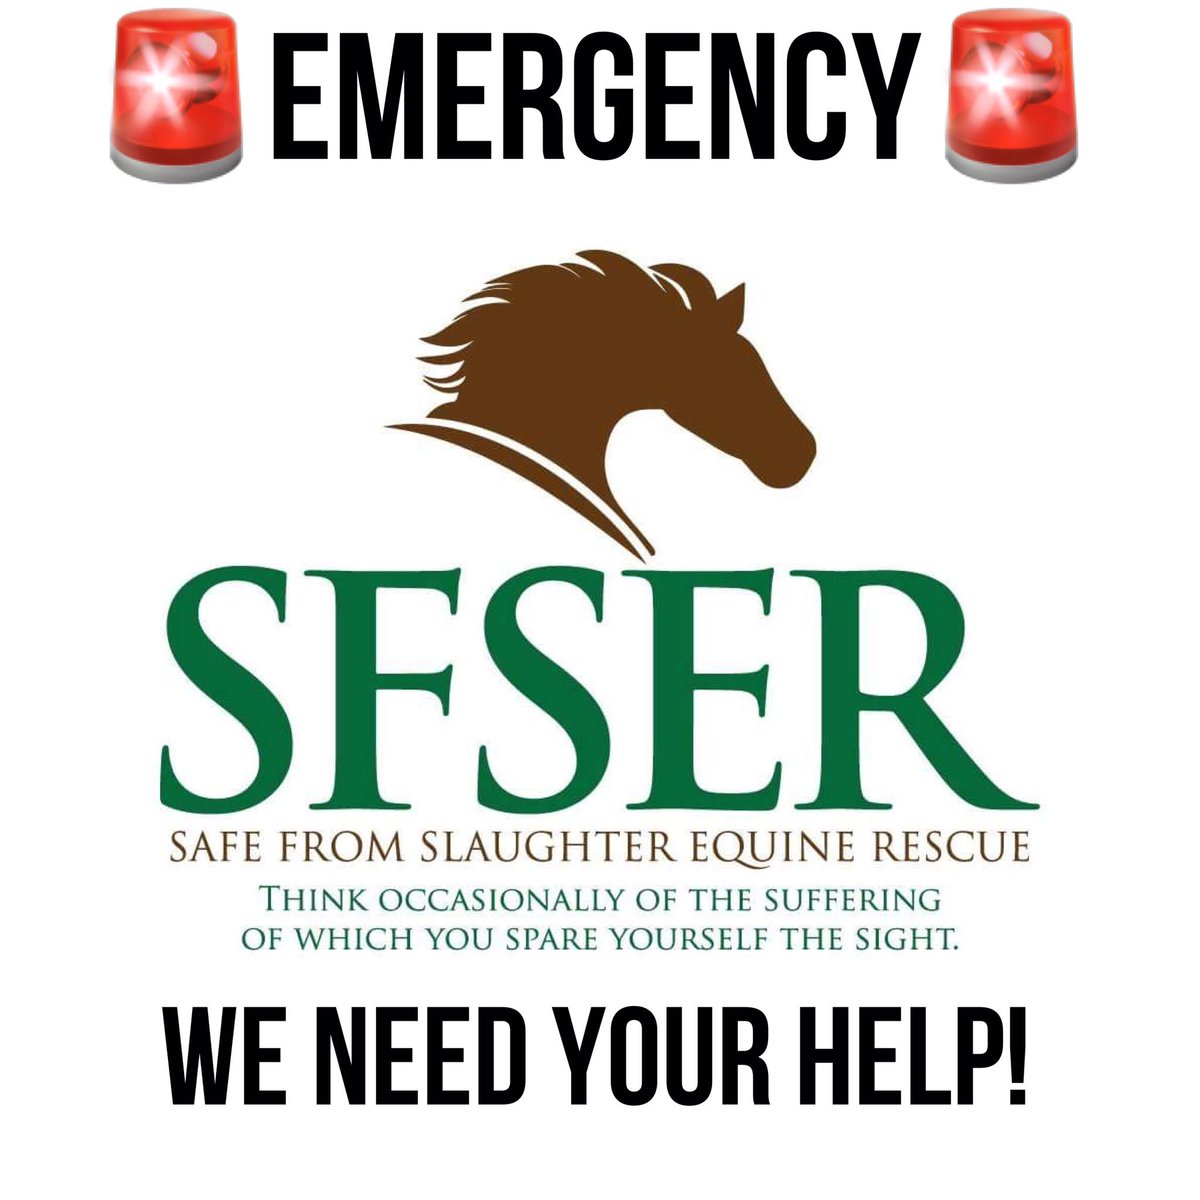 Safe From Slaughter Equine Rescue 501(c)3 on Twitter